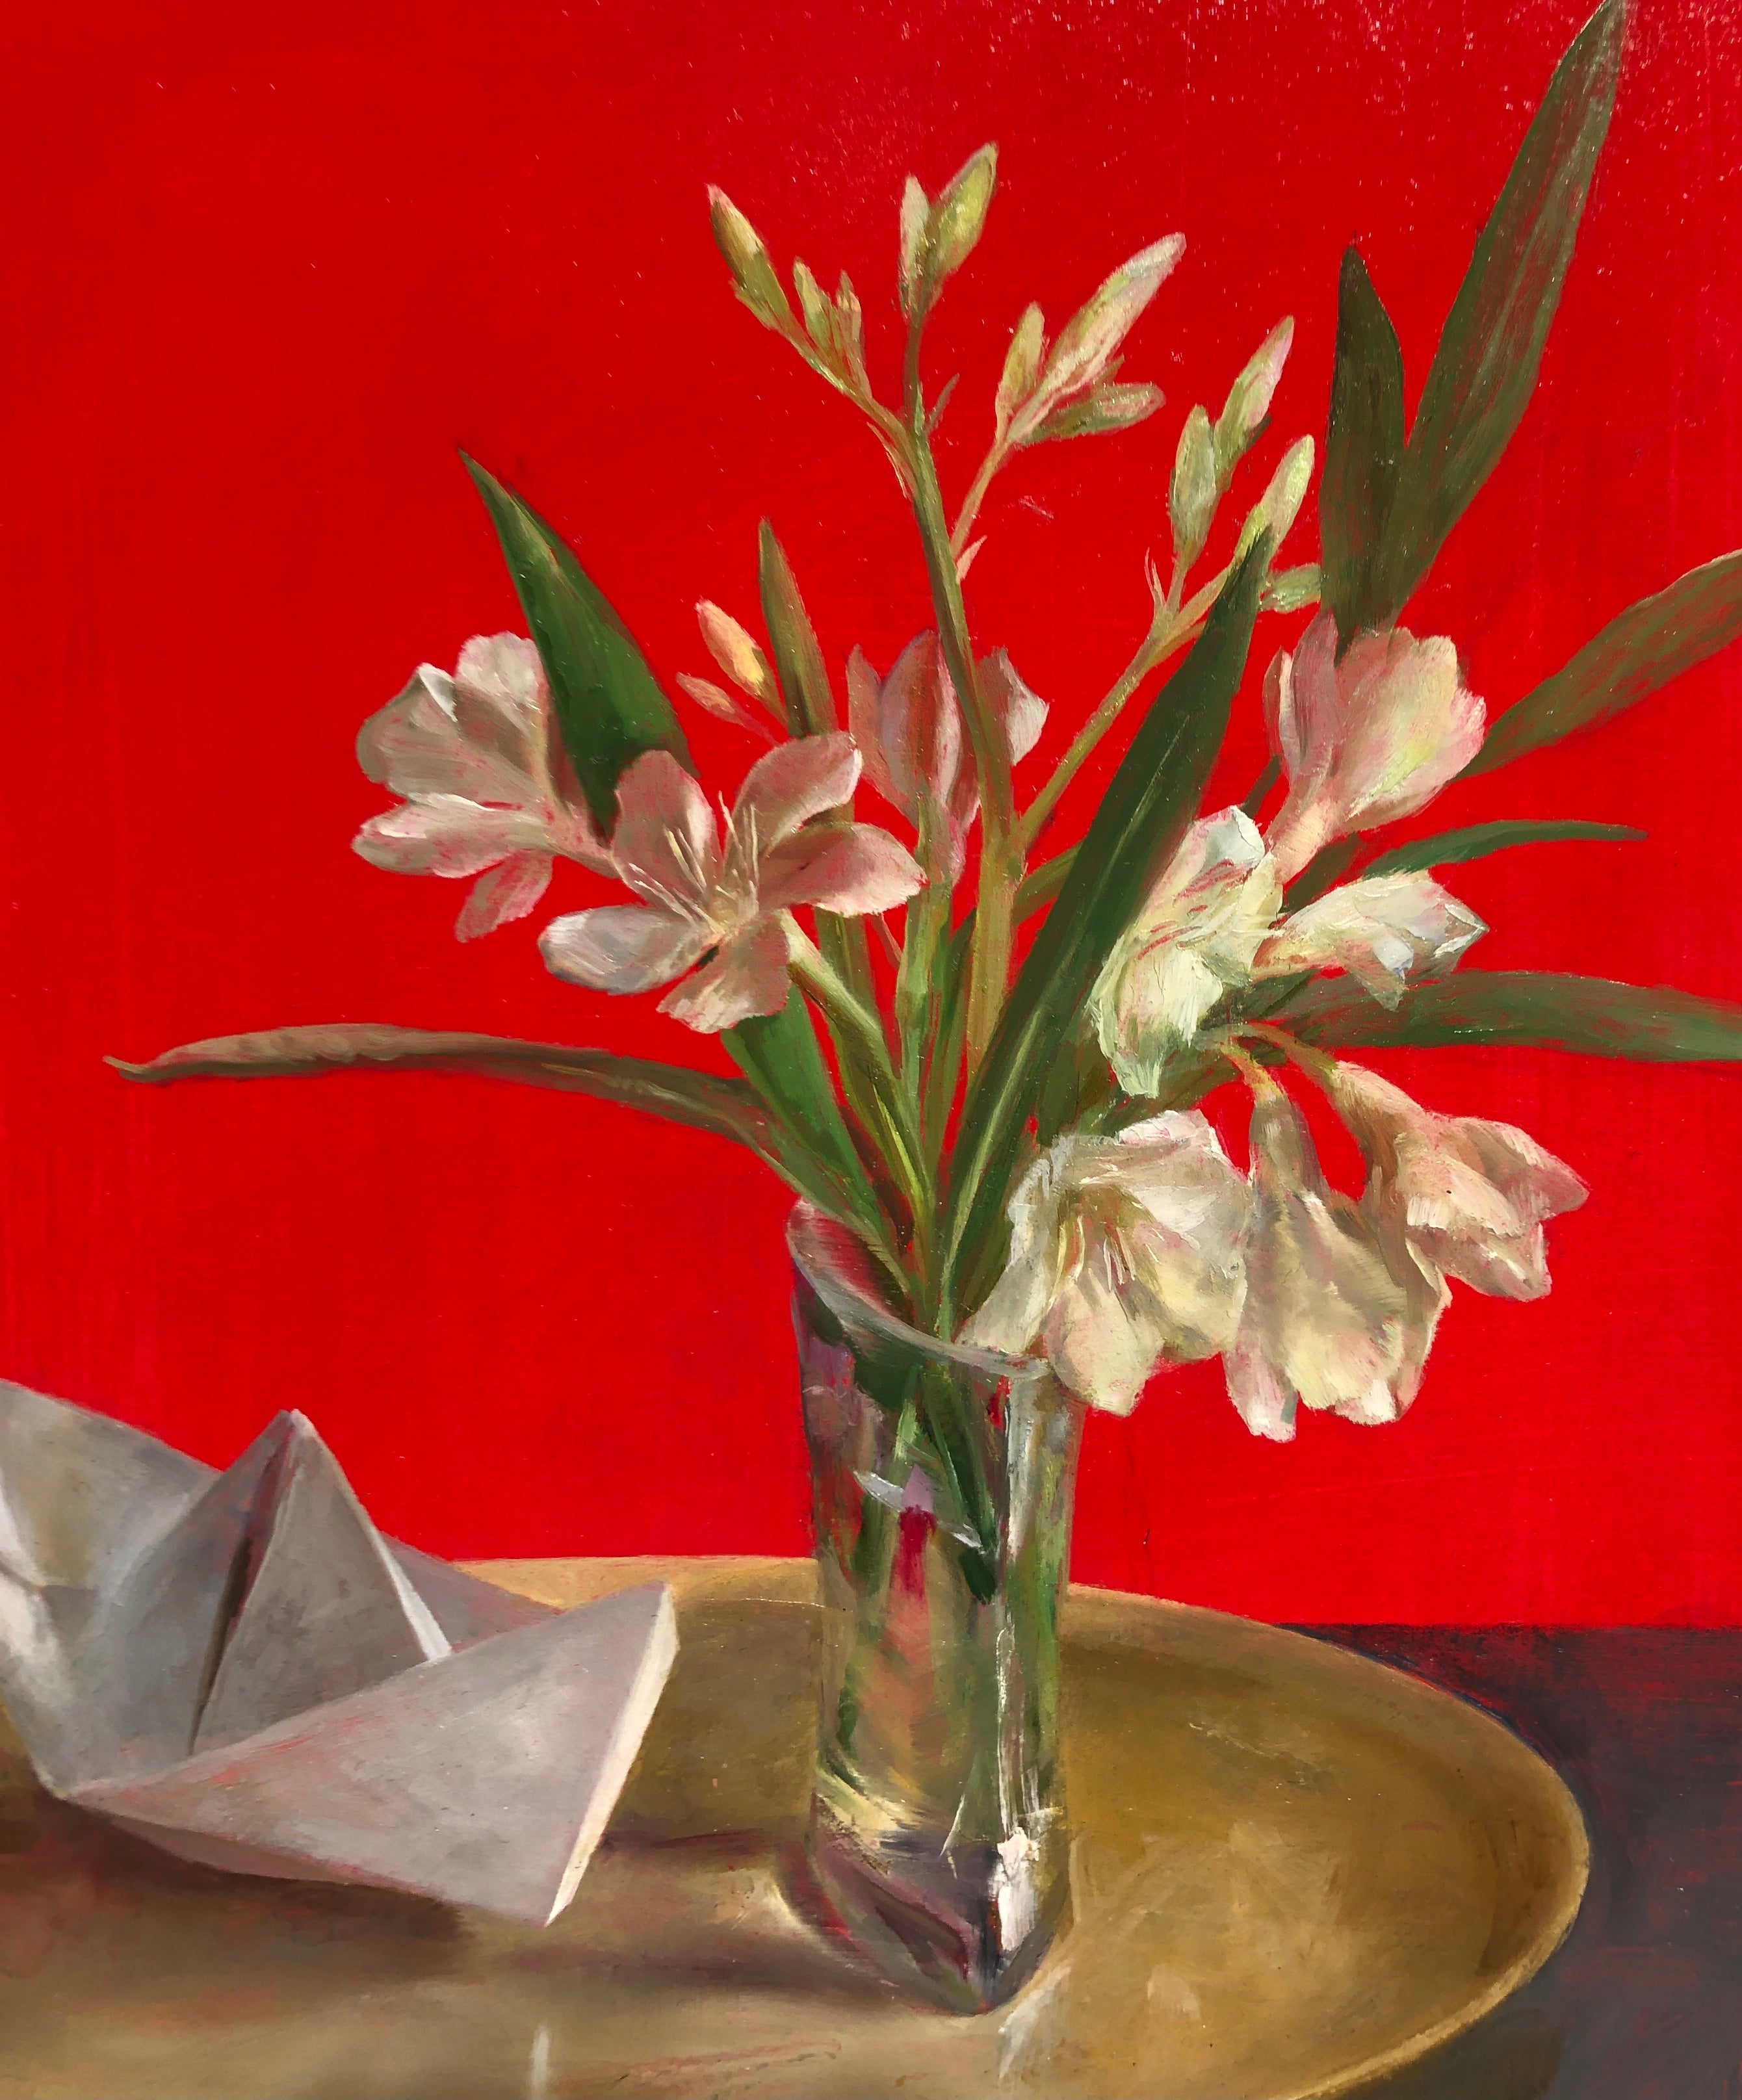 Still Life with Oleander - White Flowers on a Gold Tray with a Paper Boat